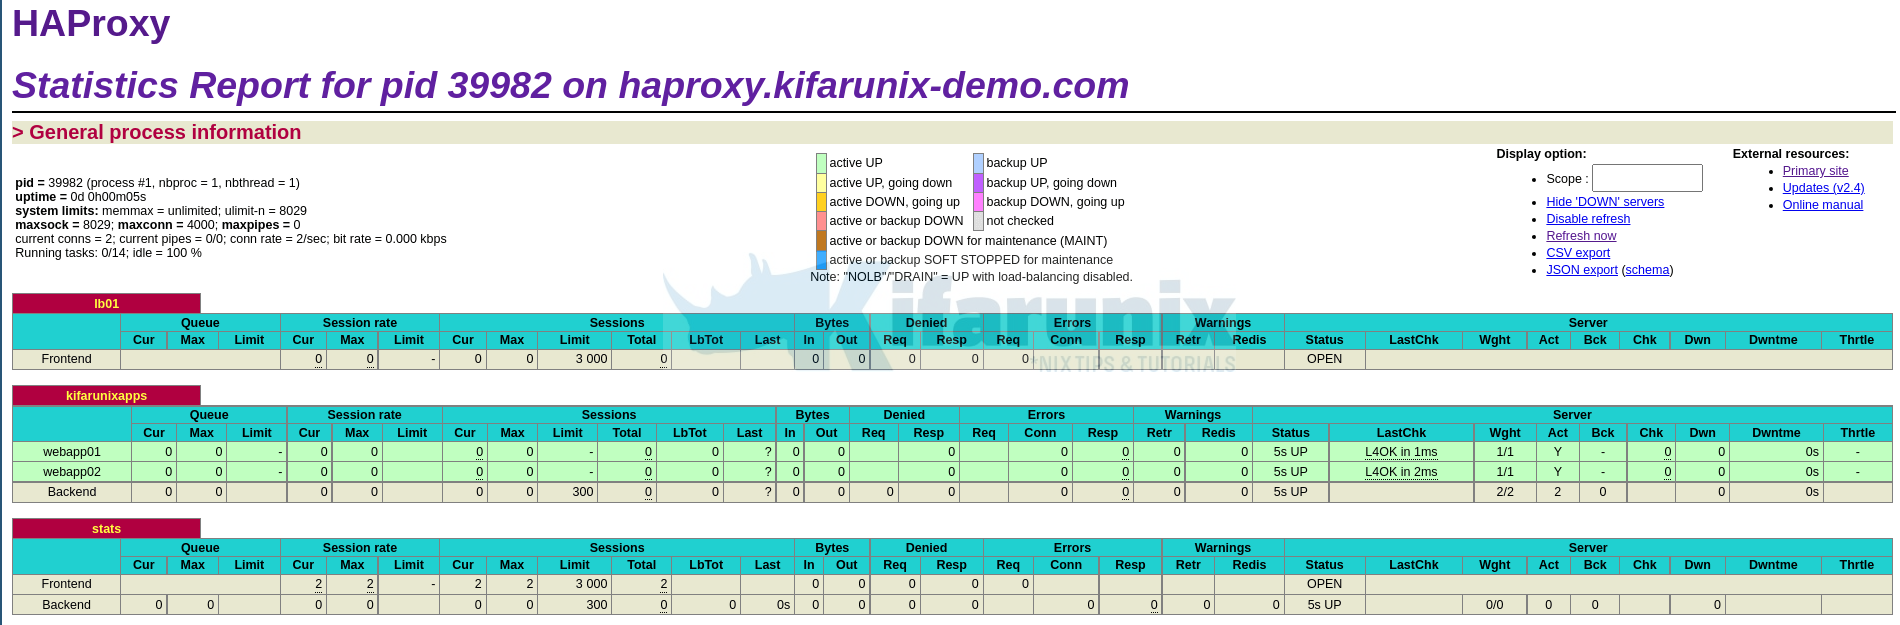 Install HAProxy on Rocky Linux 8